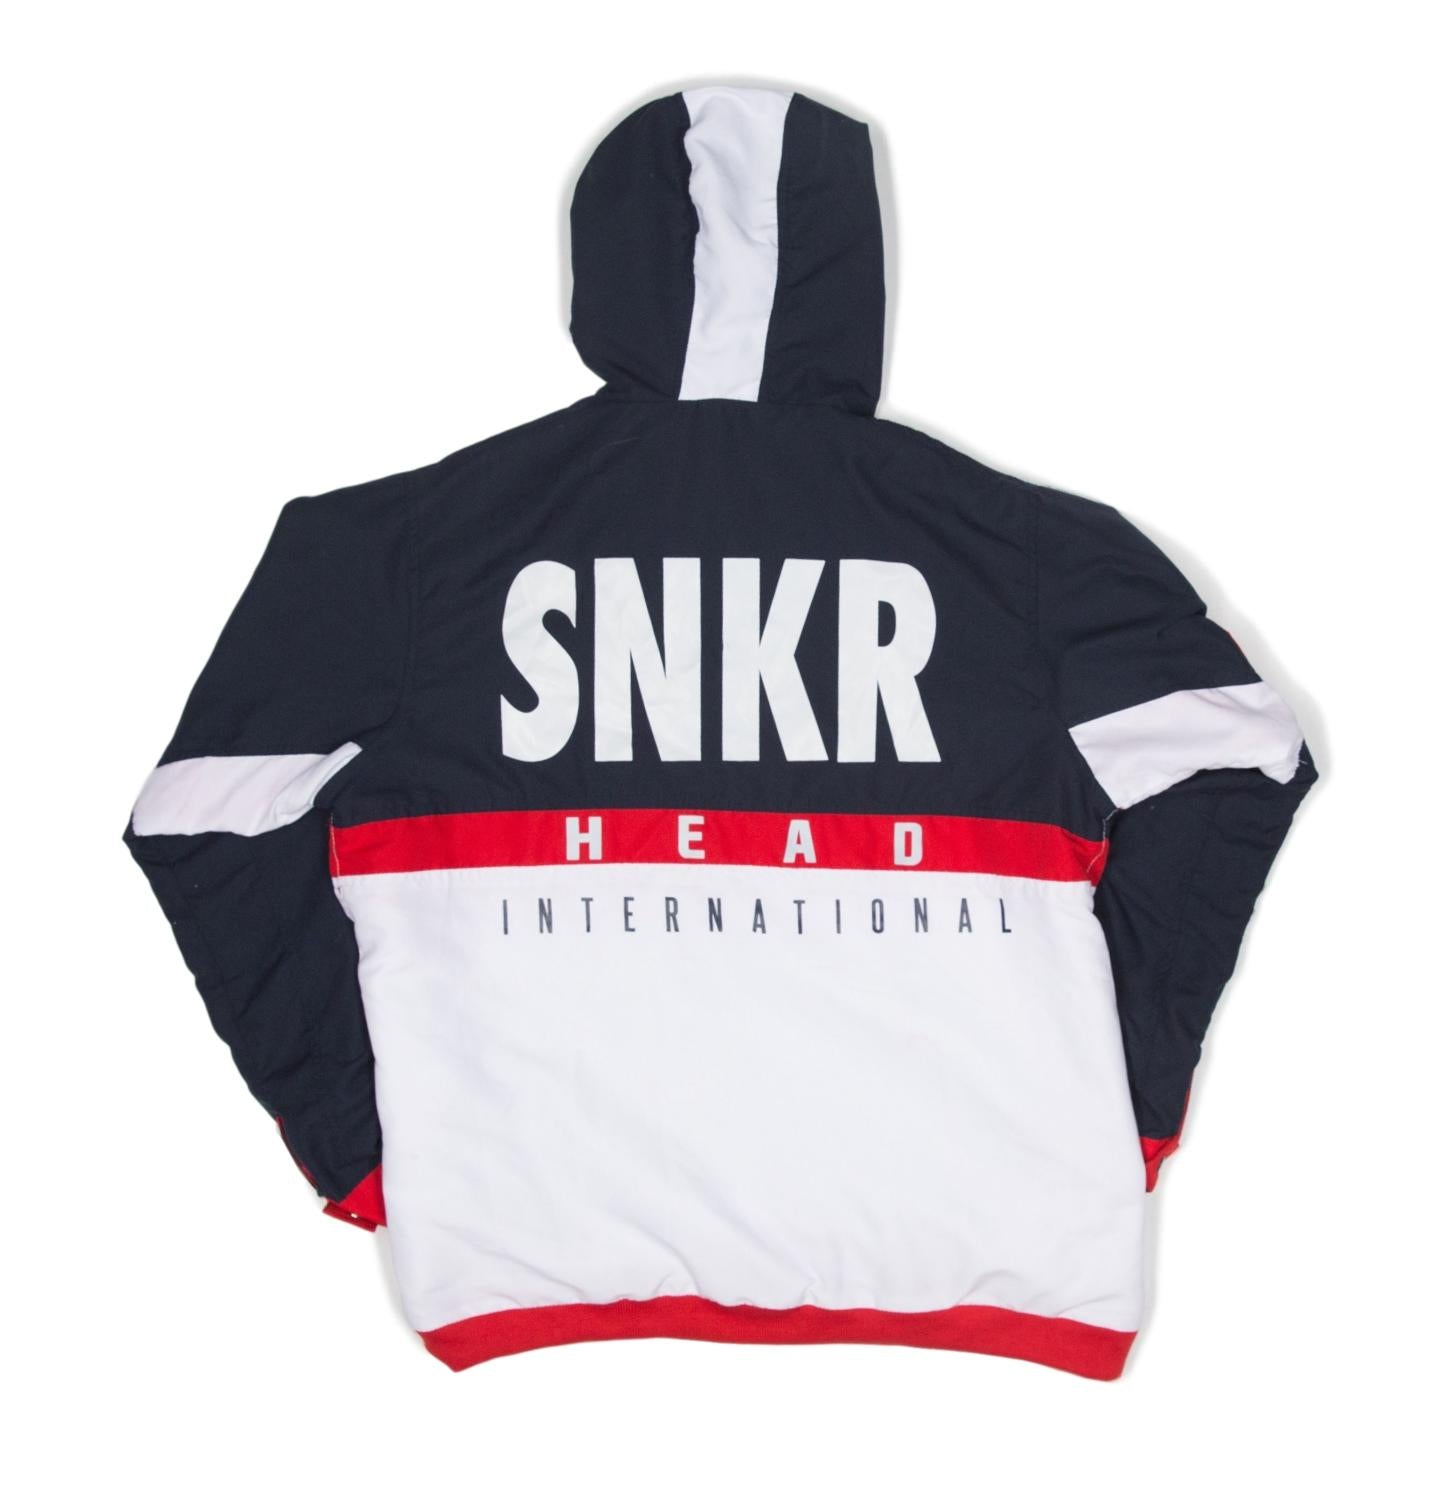 SNKR HEAD Tech-Sport International Windbreaker Jacket (Red, White, Blue)